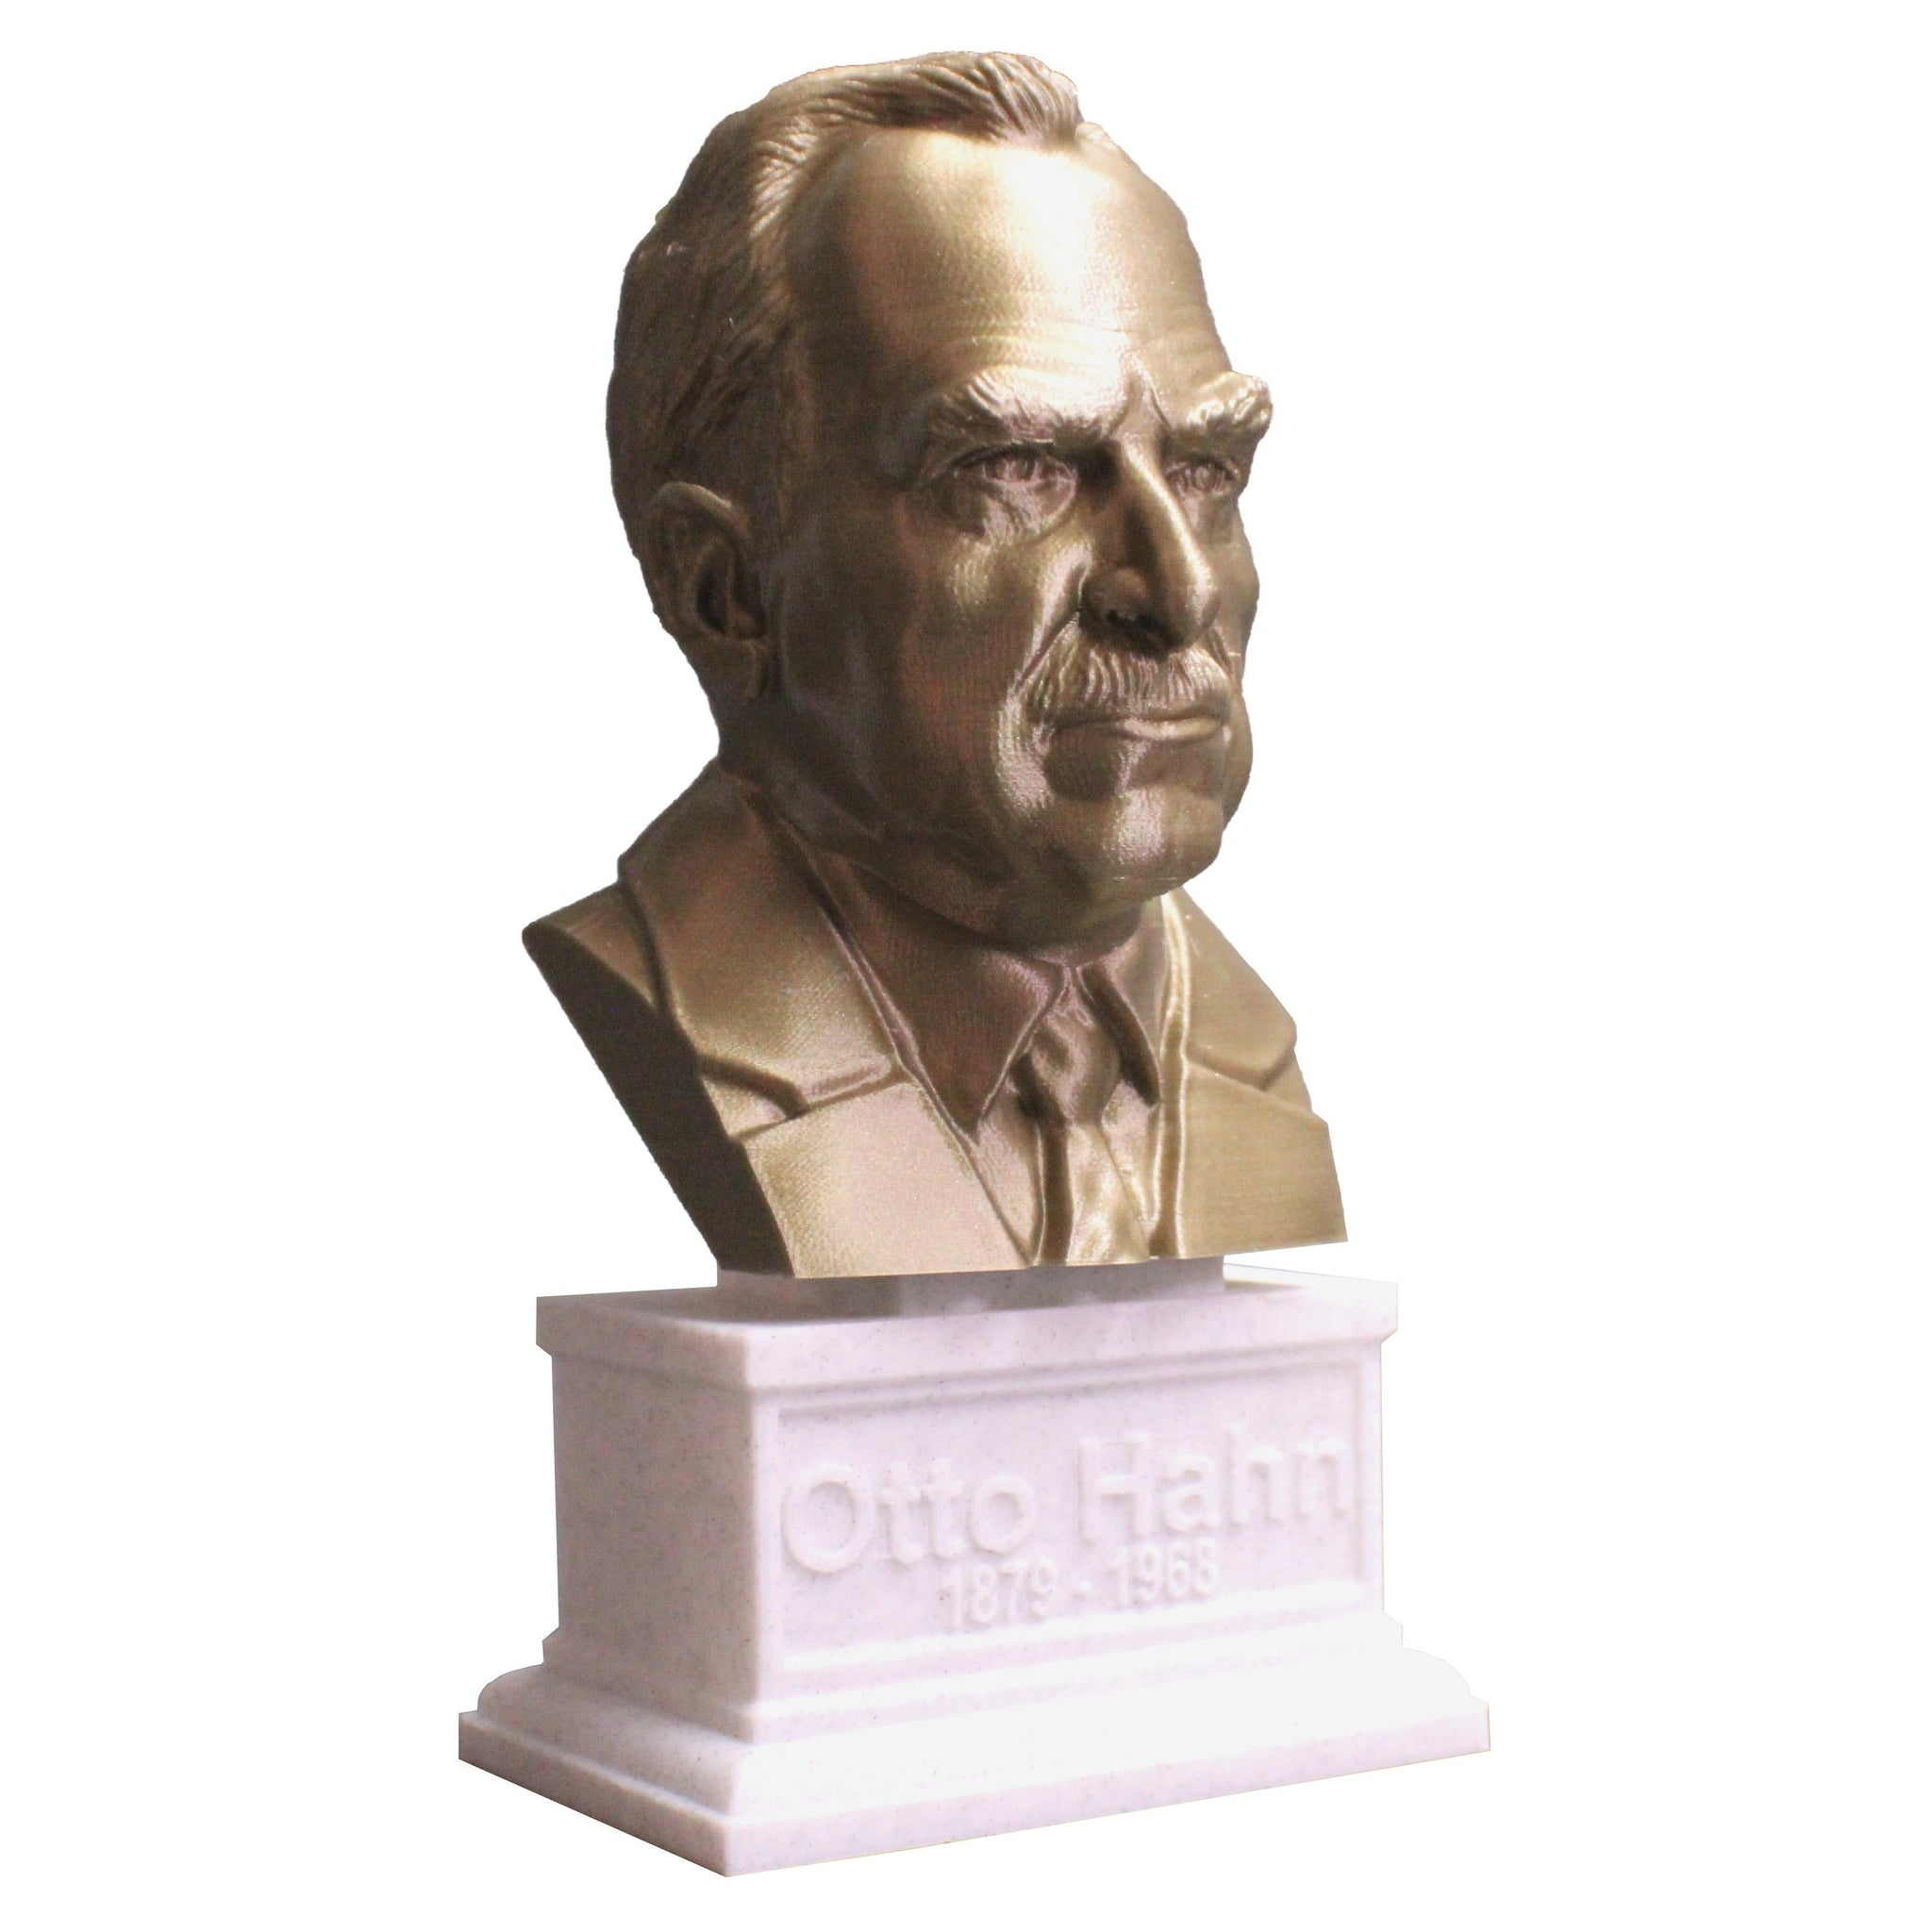 Otto Hahn Famous German Chemist, Nobel Prize Winner, and Researcher of Radioactivity Sculpture Bust on Box Plinth